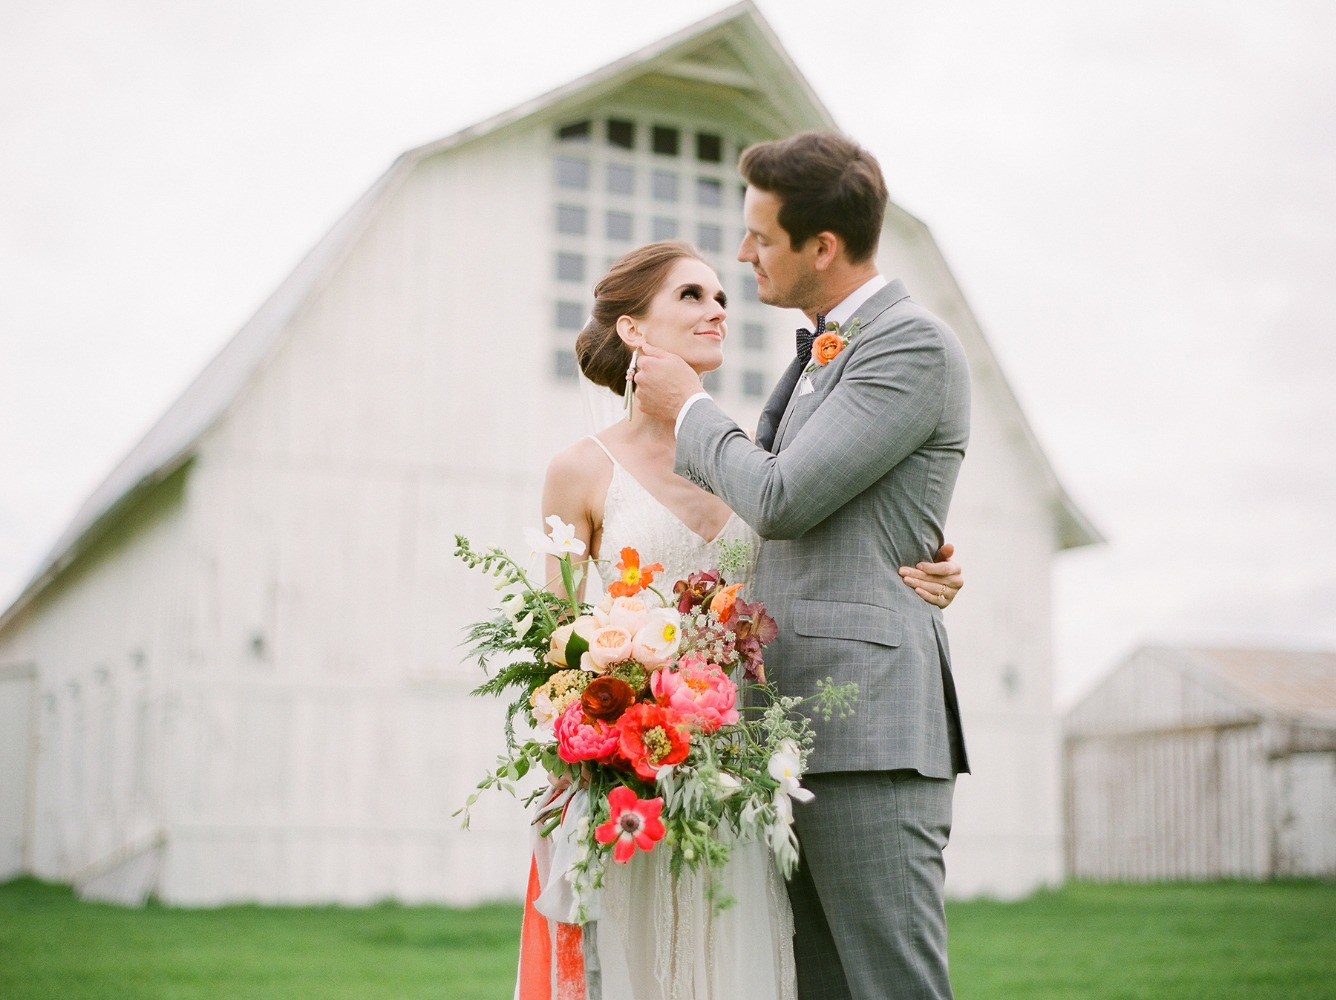 wedding couple at white barn wedding venue in Idaho